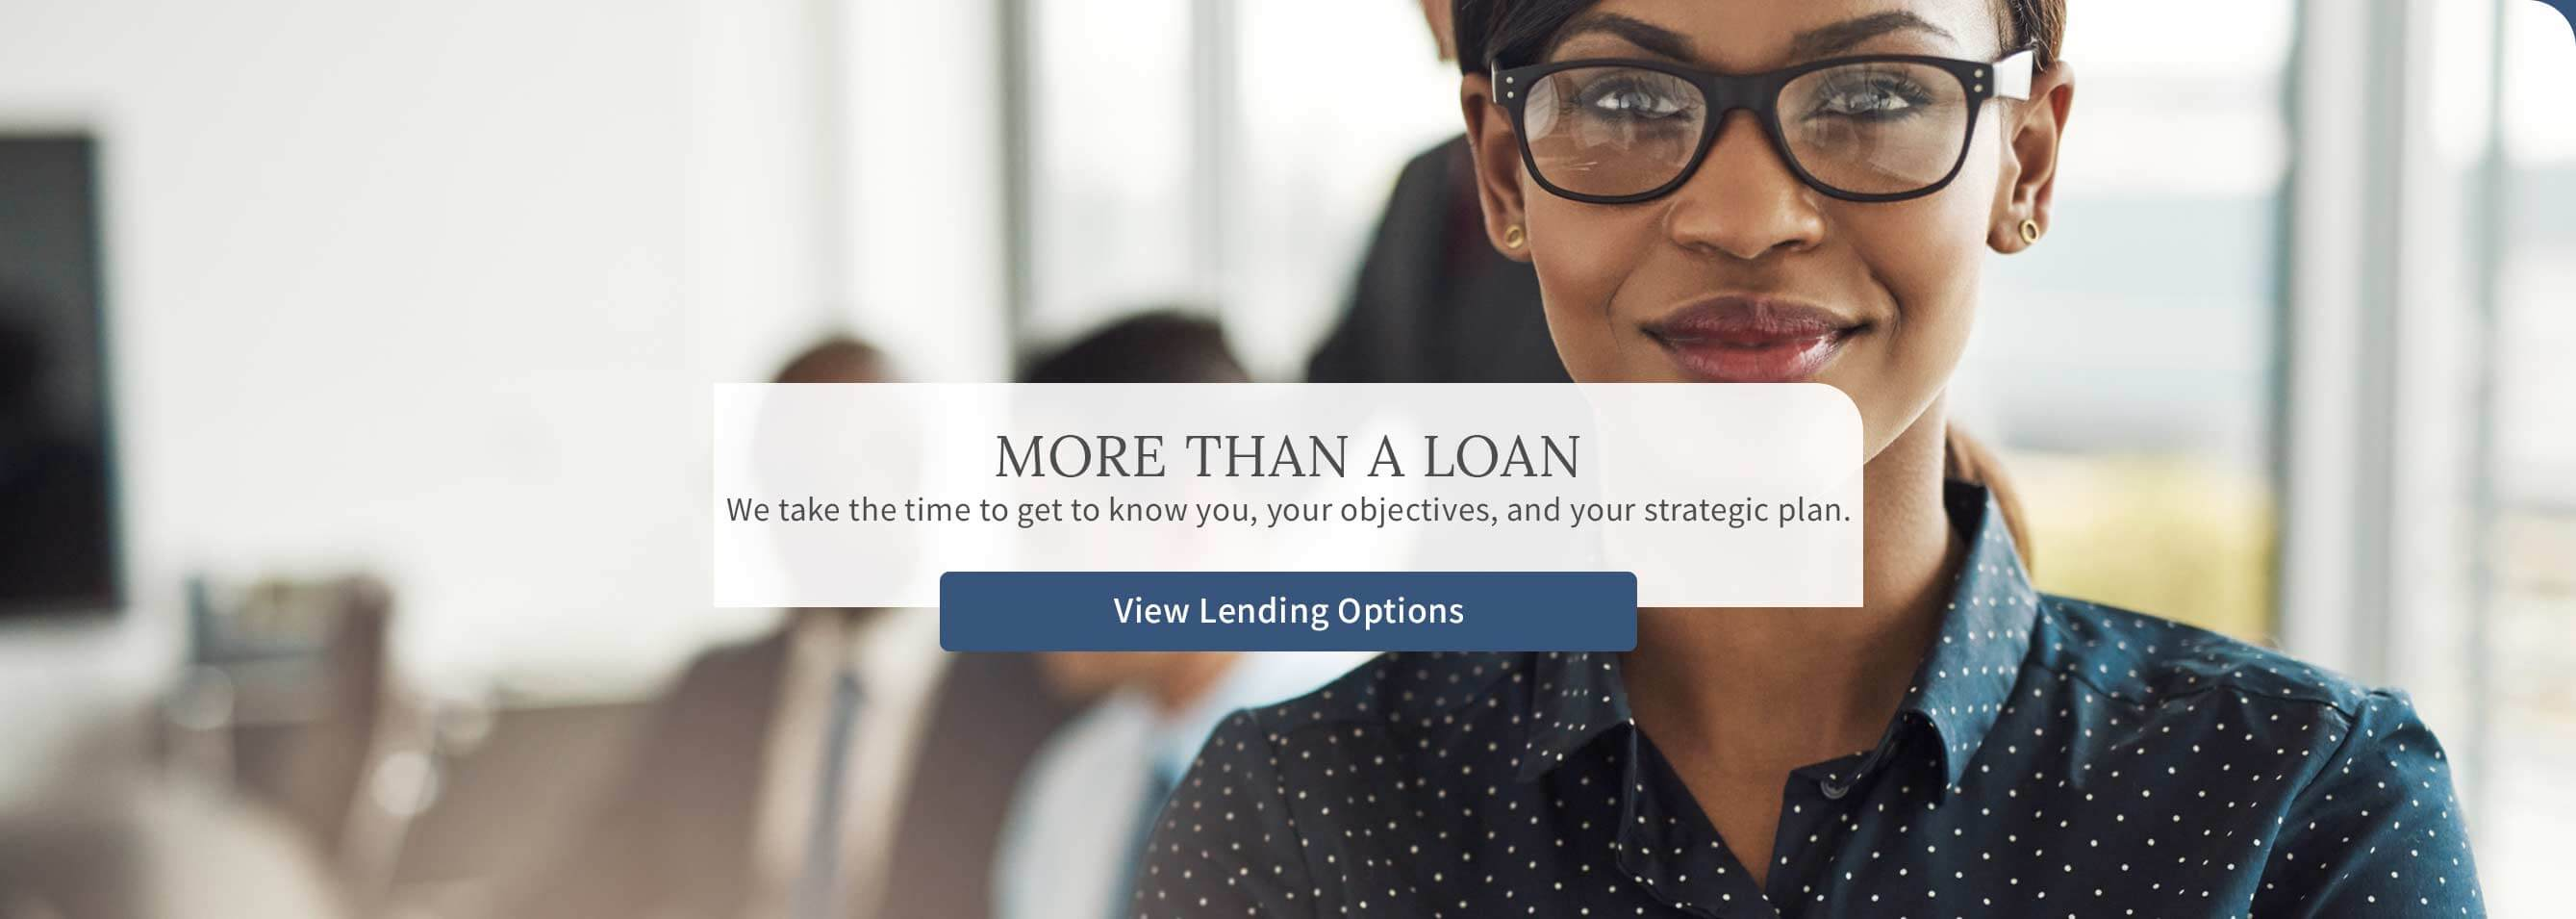 More than a loan. We take the time to get to know you, your objectives, and your strategic plan. View Lending Options